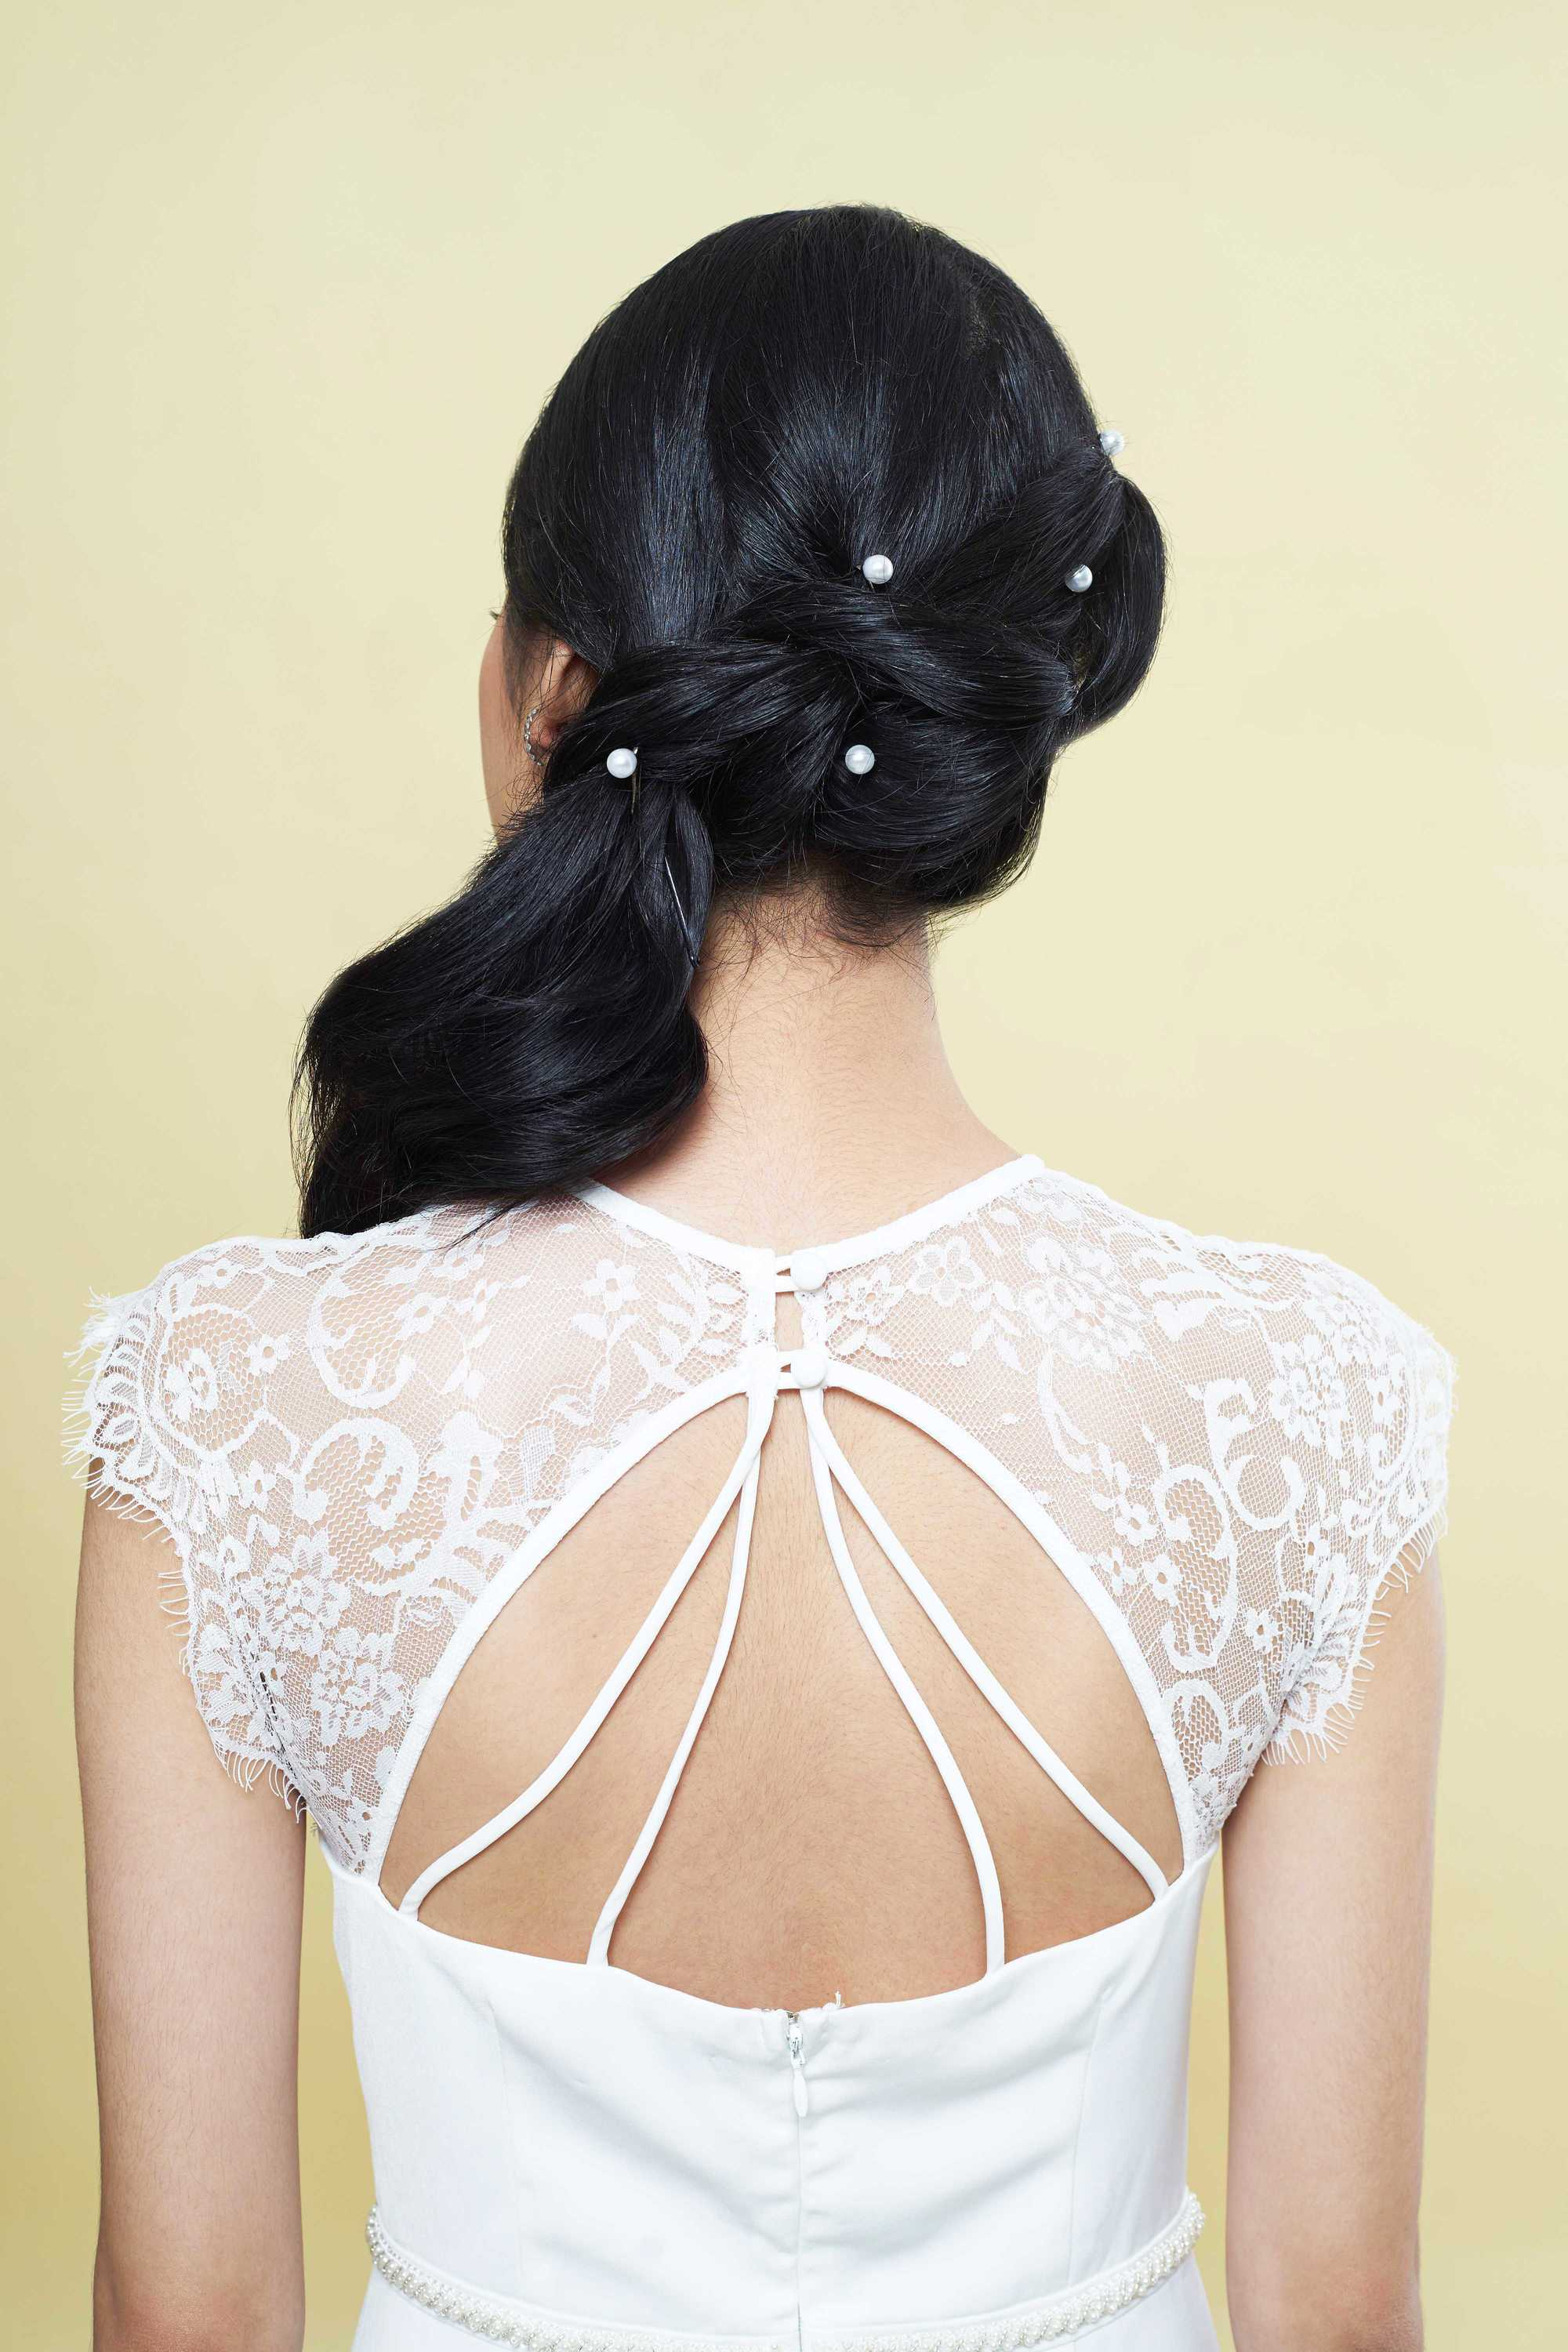 Wedding updos for long hair: Back shot of a bride with long dark hair styled into twisted ponytail, complete with pearl hair accessories, wearing a white lace dress and posing in a studio.